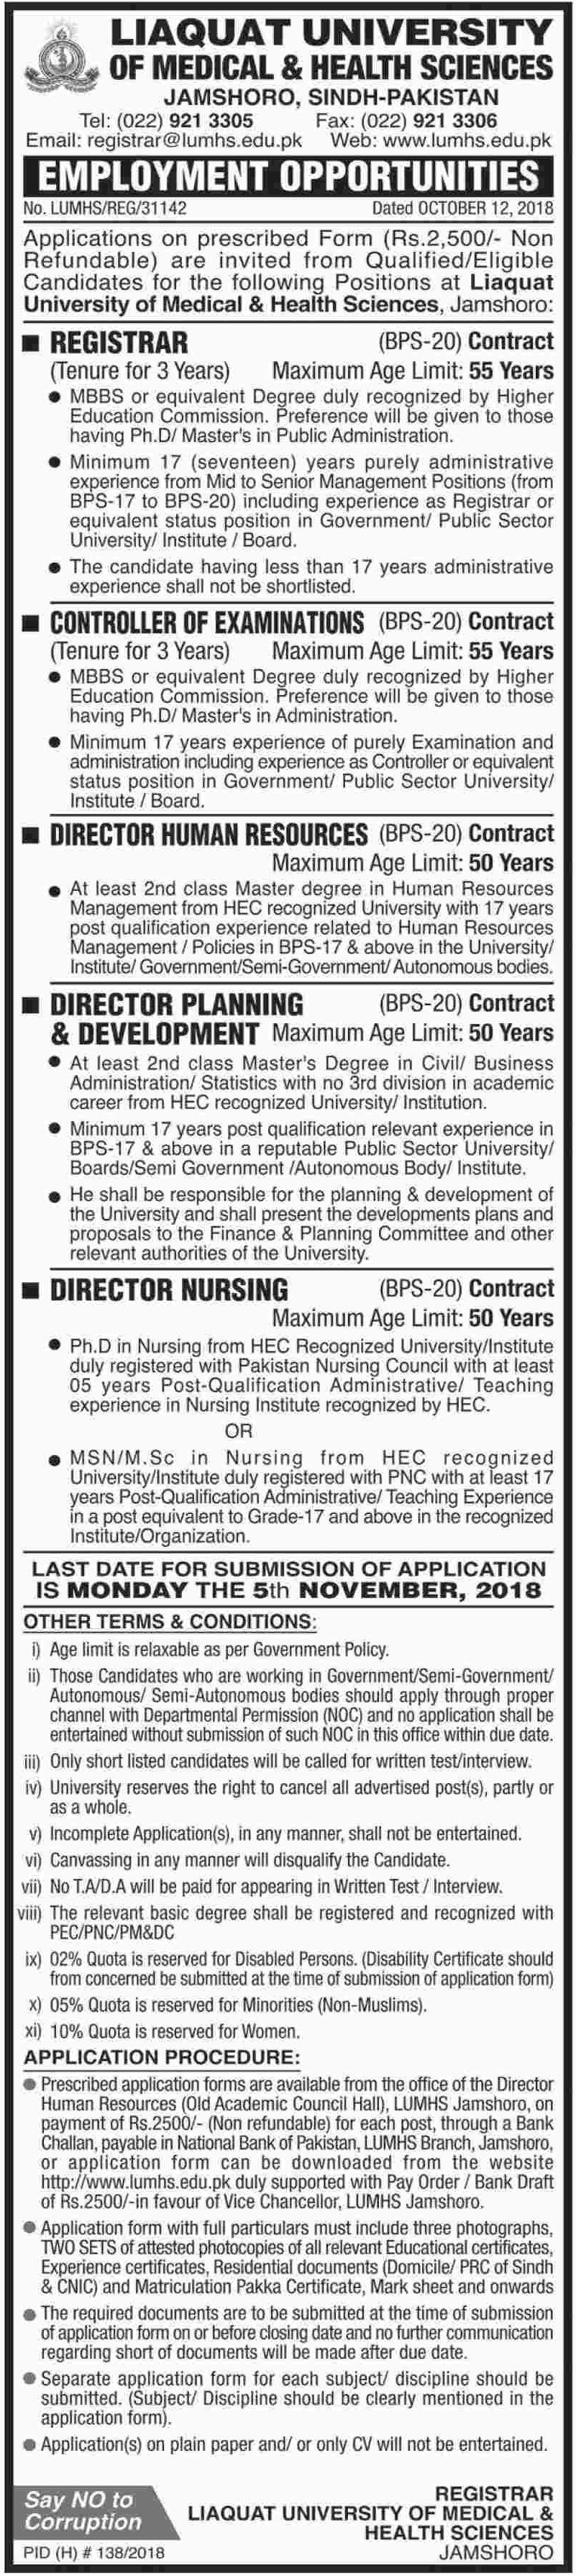 Liaquat University of Medical & Health Sciences Jamshoro Sindh Jobs 2018